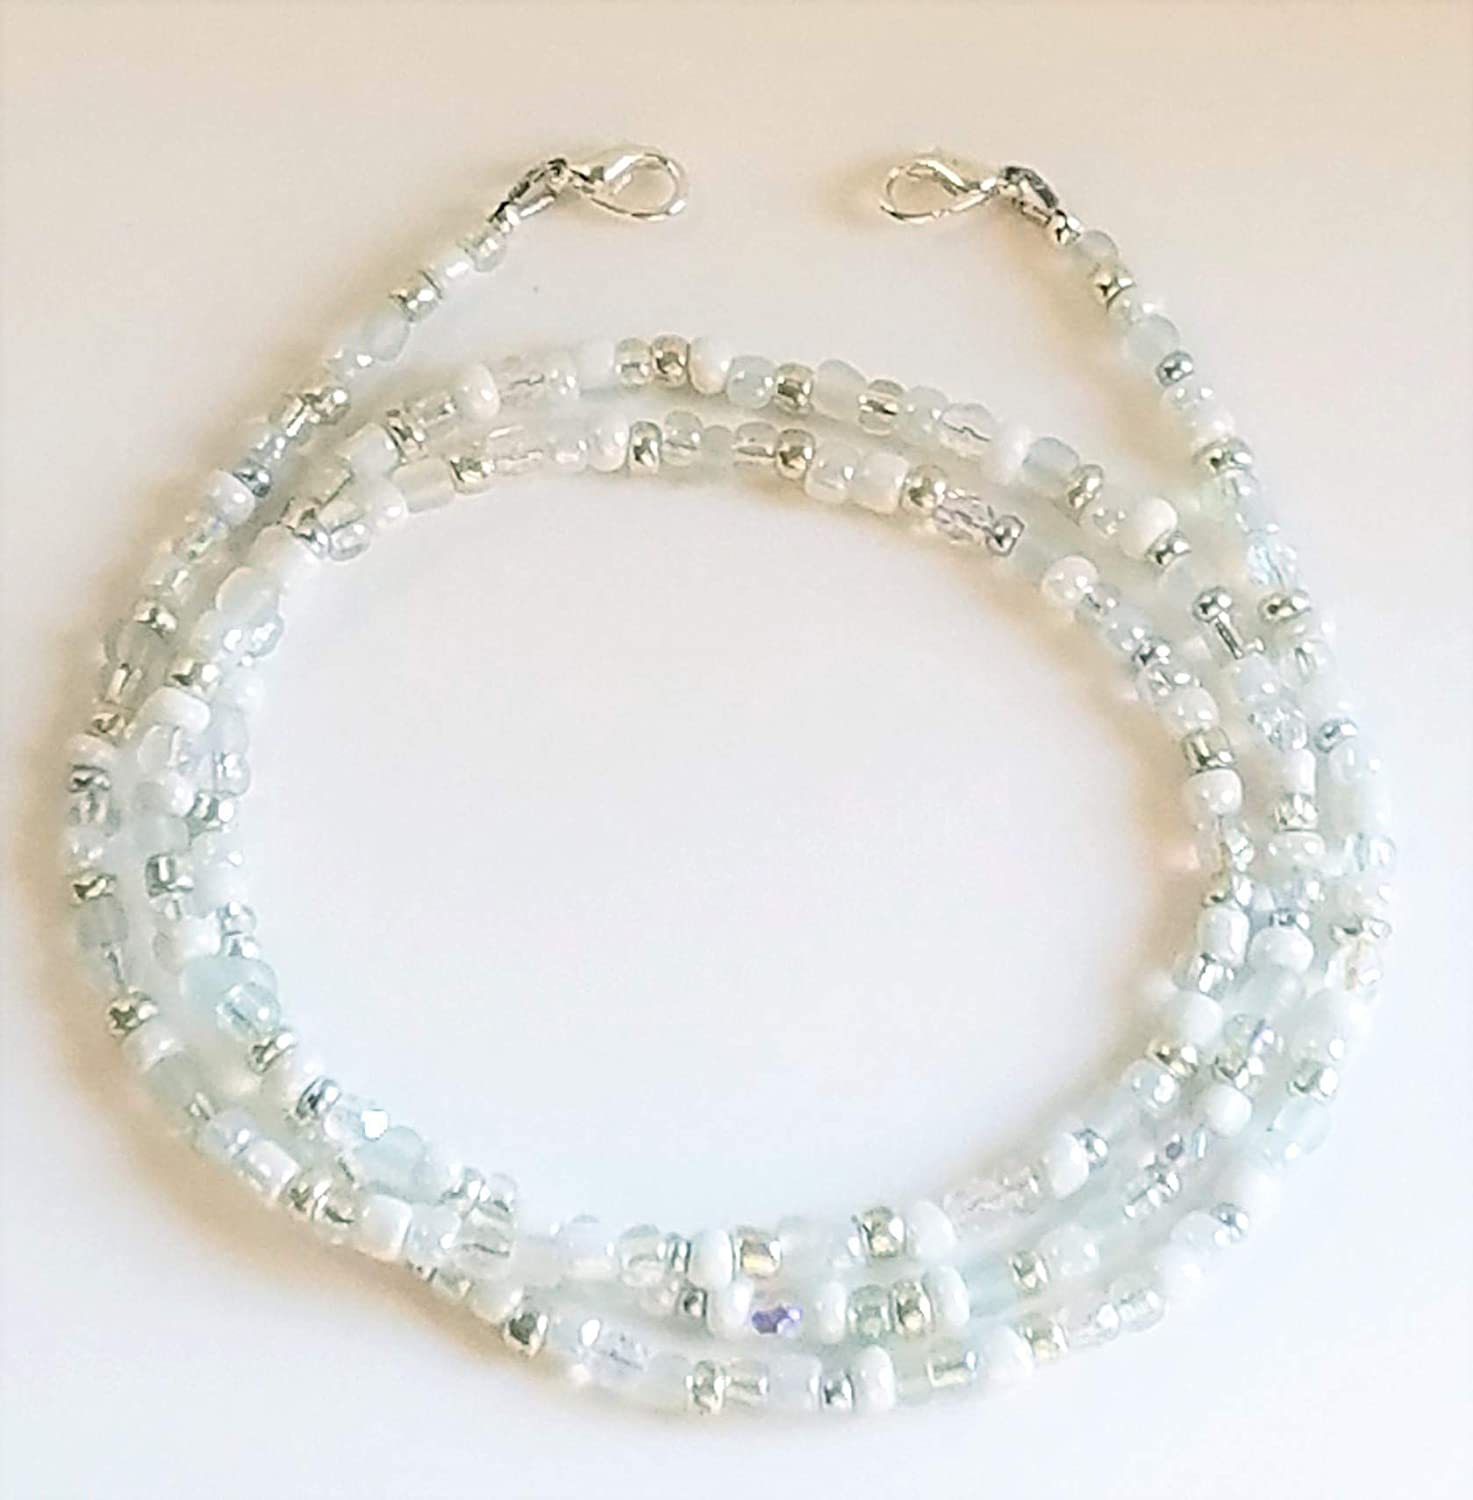 Mask Lanyard Beach Series 1-Mask Necklace Beaded Mask Holder-Grey Glass Beads with Silver Plate Nautilus Shell /& Beads